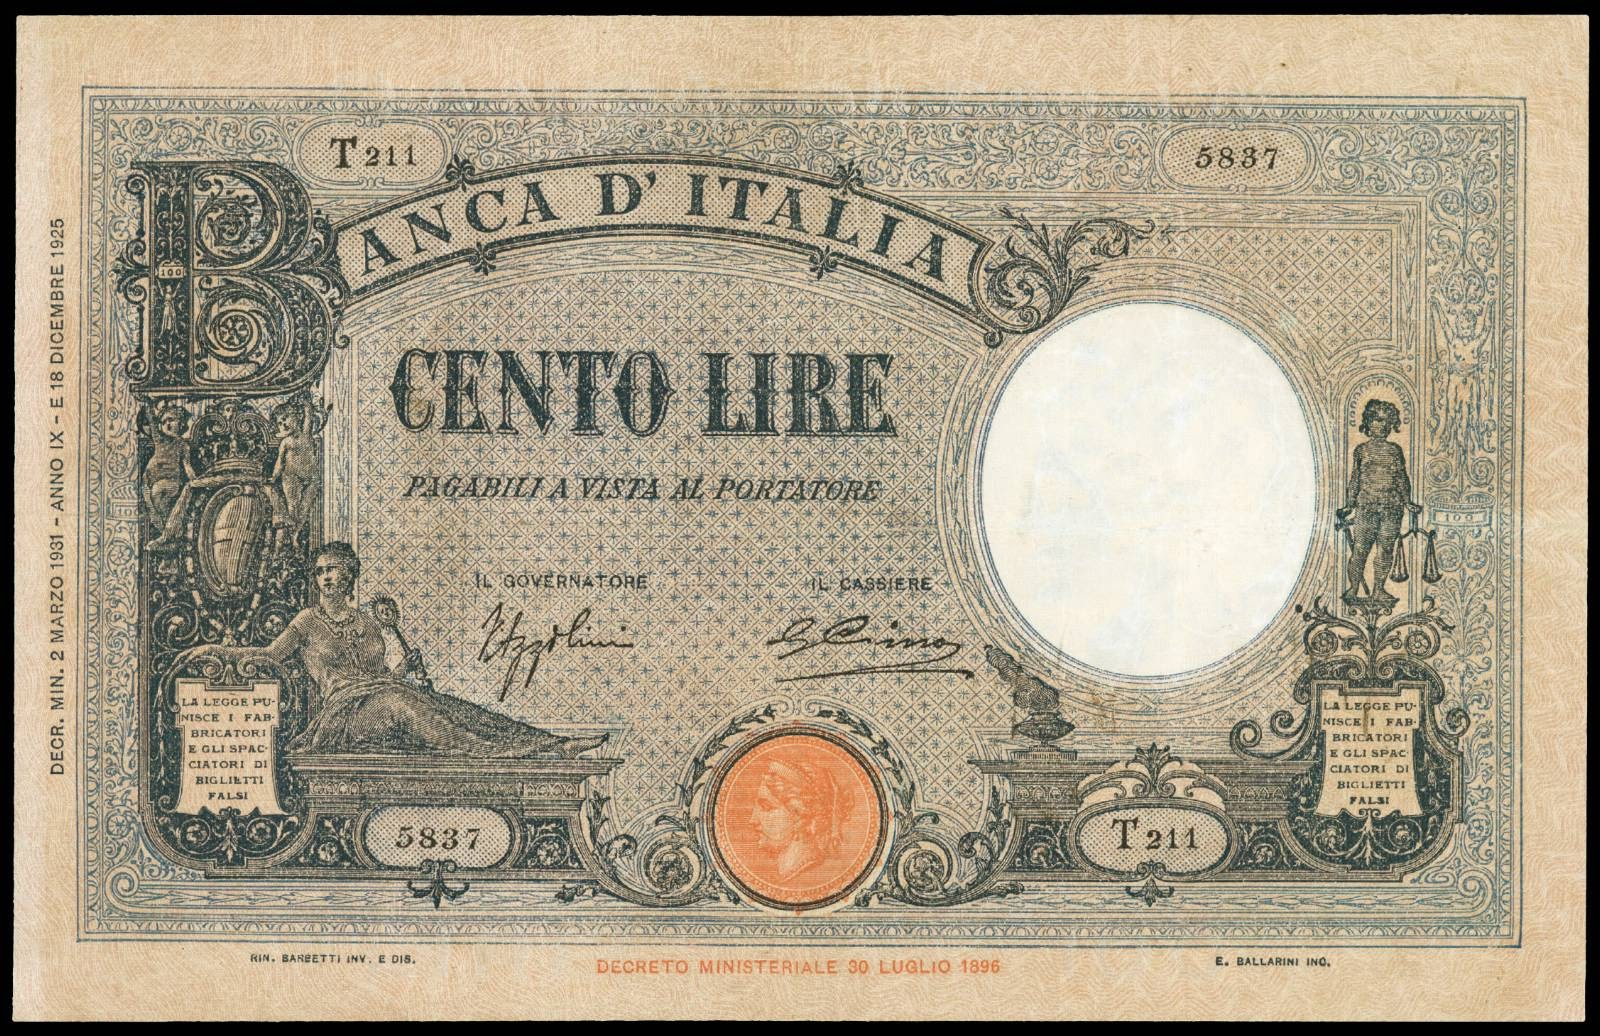 Italy 100 Lire banknote 1931